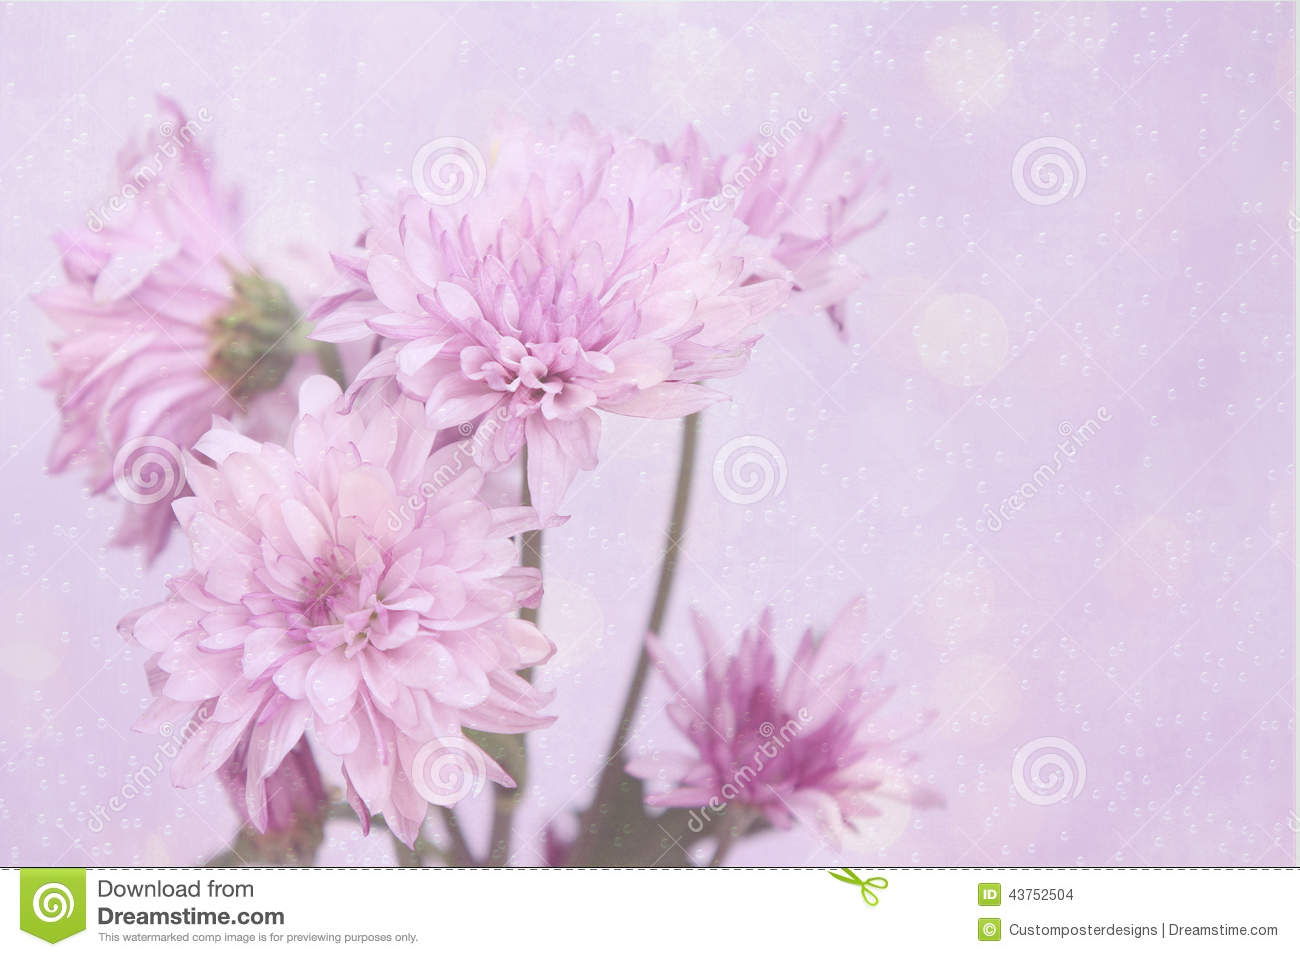 Download Fresh Pink Flowers With A Pink Halo And Bubble Background. Stock Photo - Image of botany, floral: 43752504